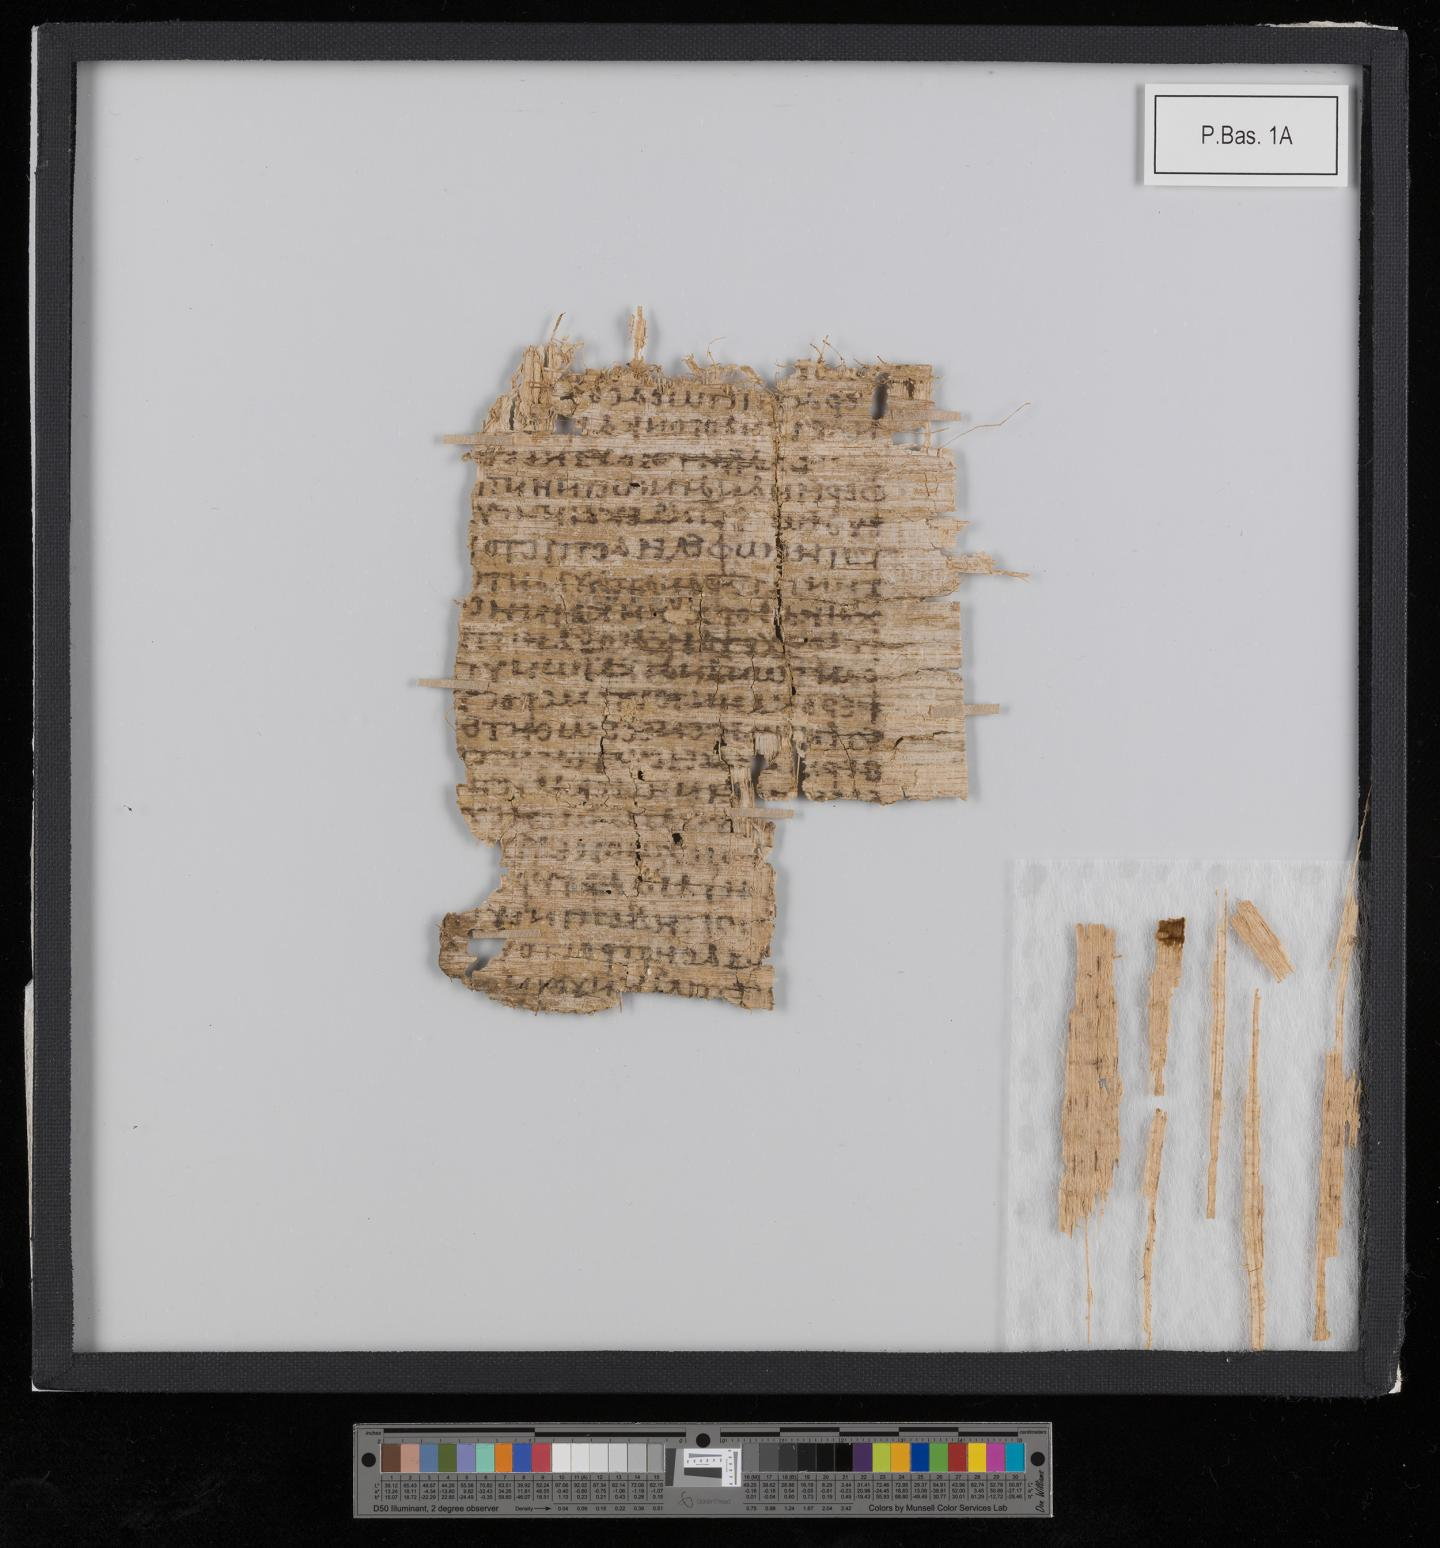 Mystery of the Basel Papyrus Solved (1 of 2)